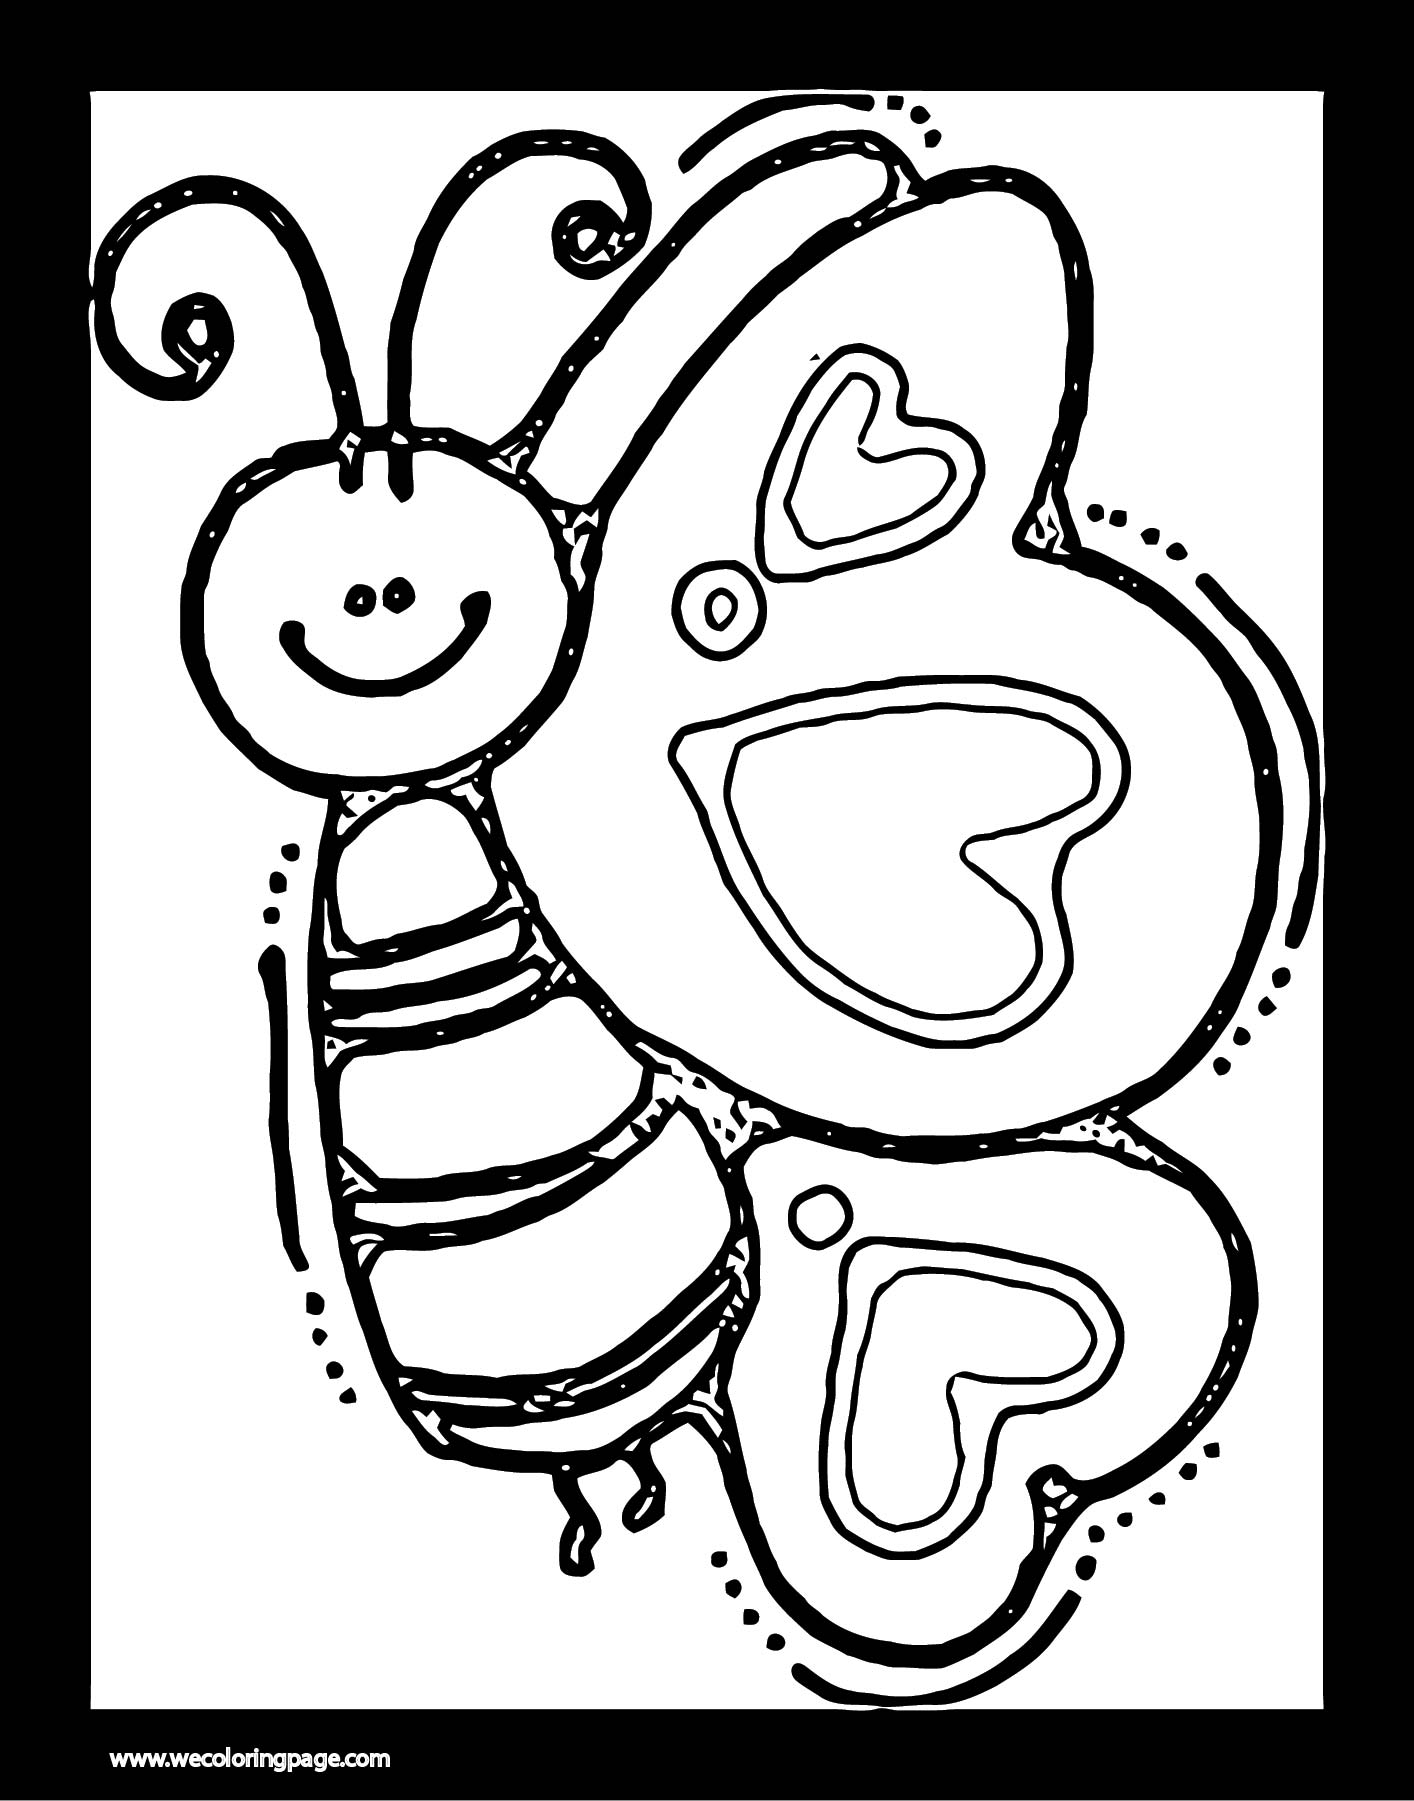 Cartoon Butterfly Frame Coloring Page